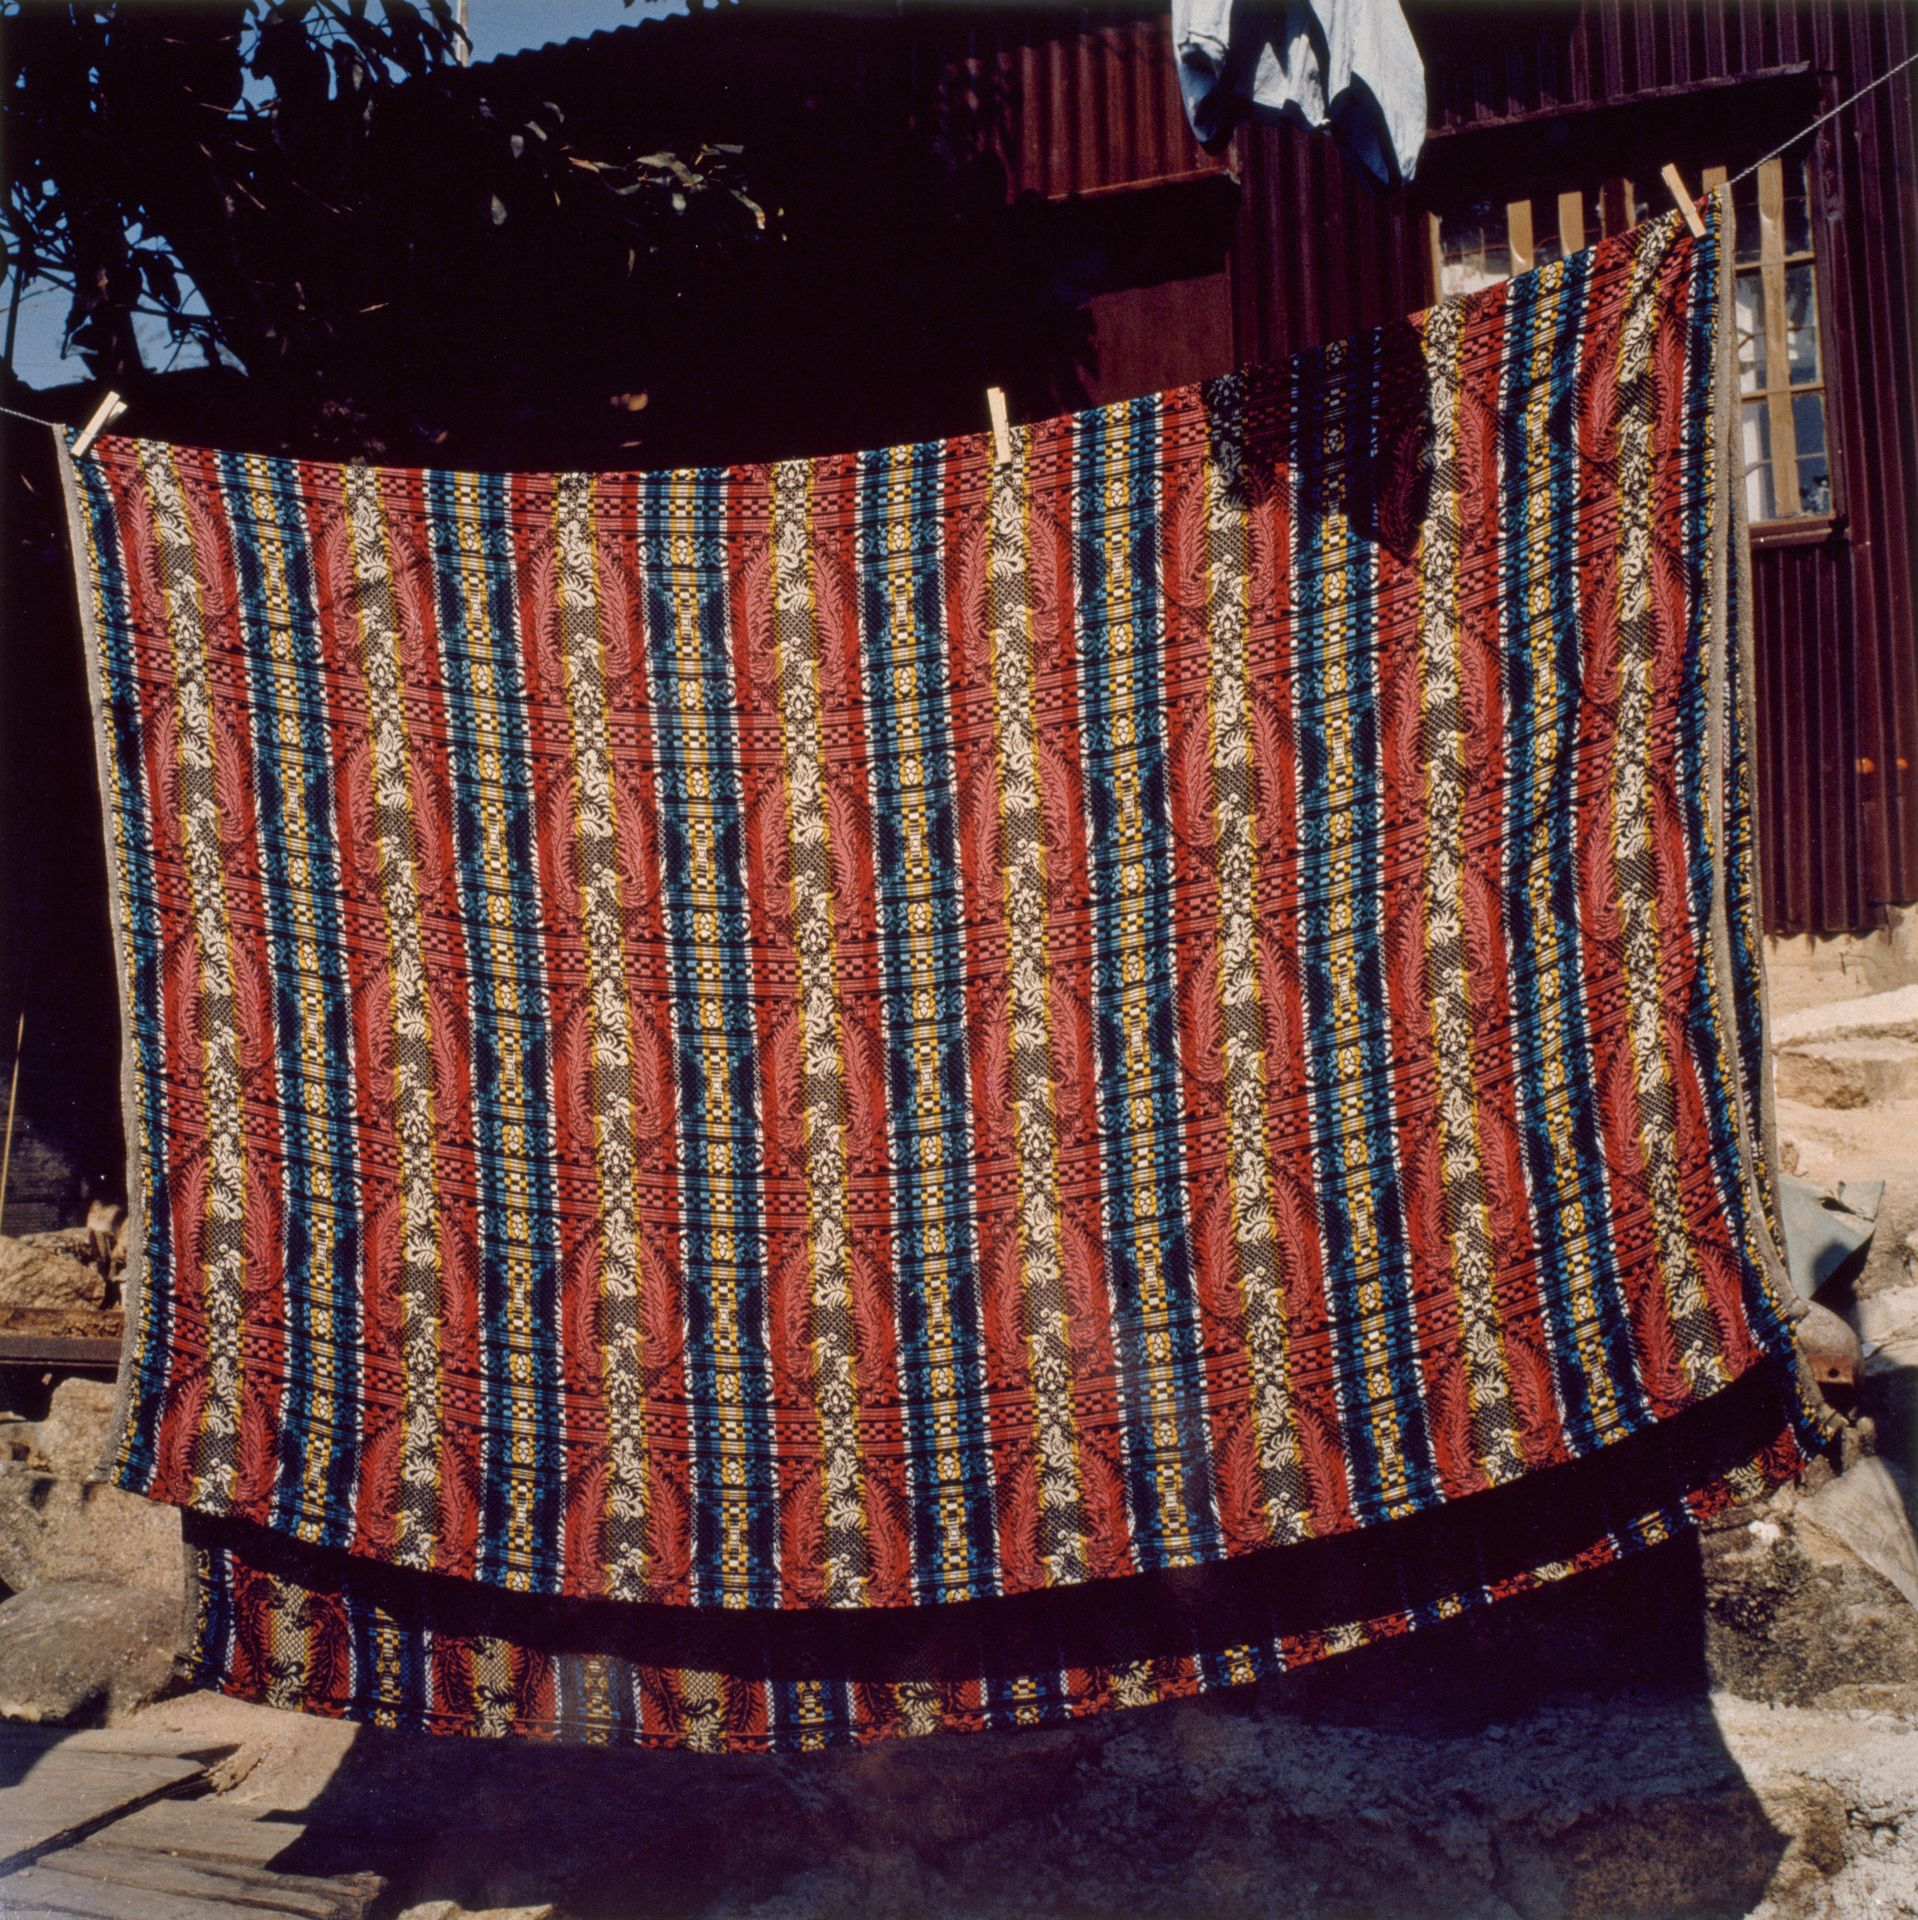 Drying Blanket, Tai O Fishing Village, Hong Kong 1980's